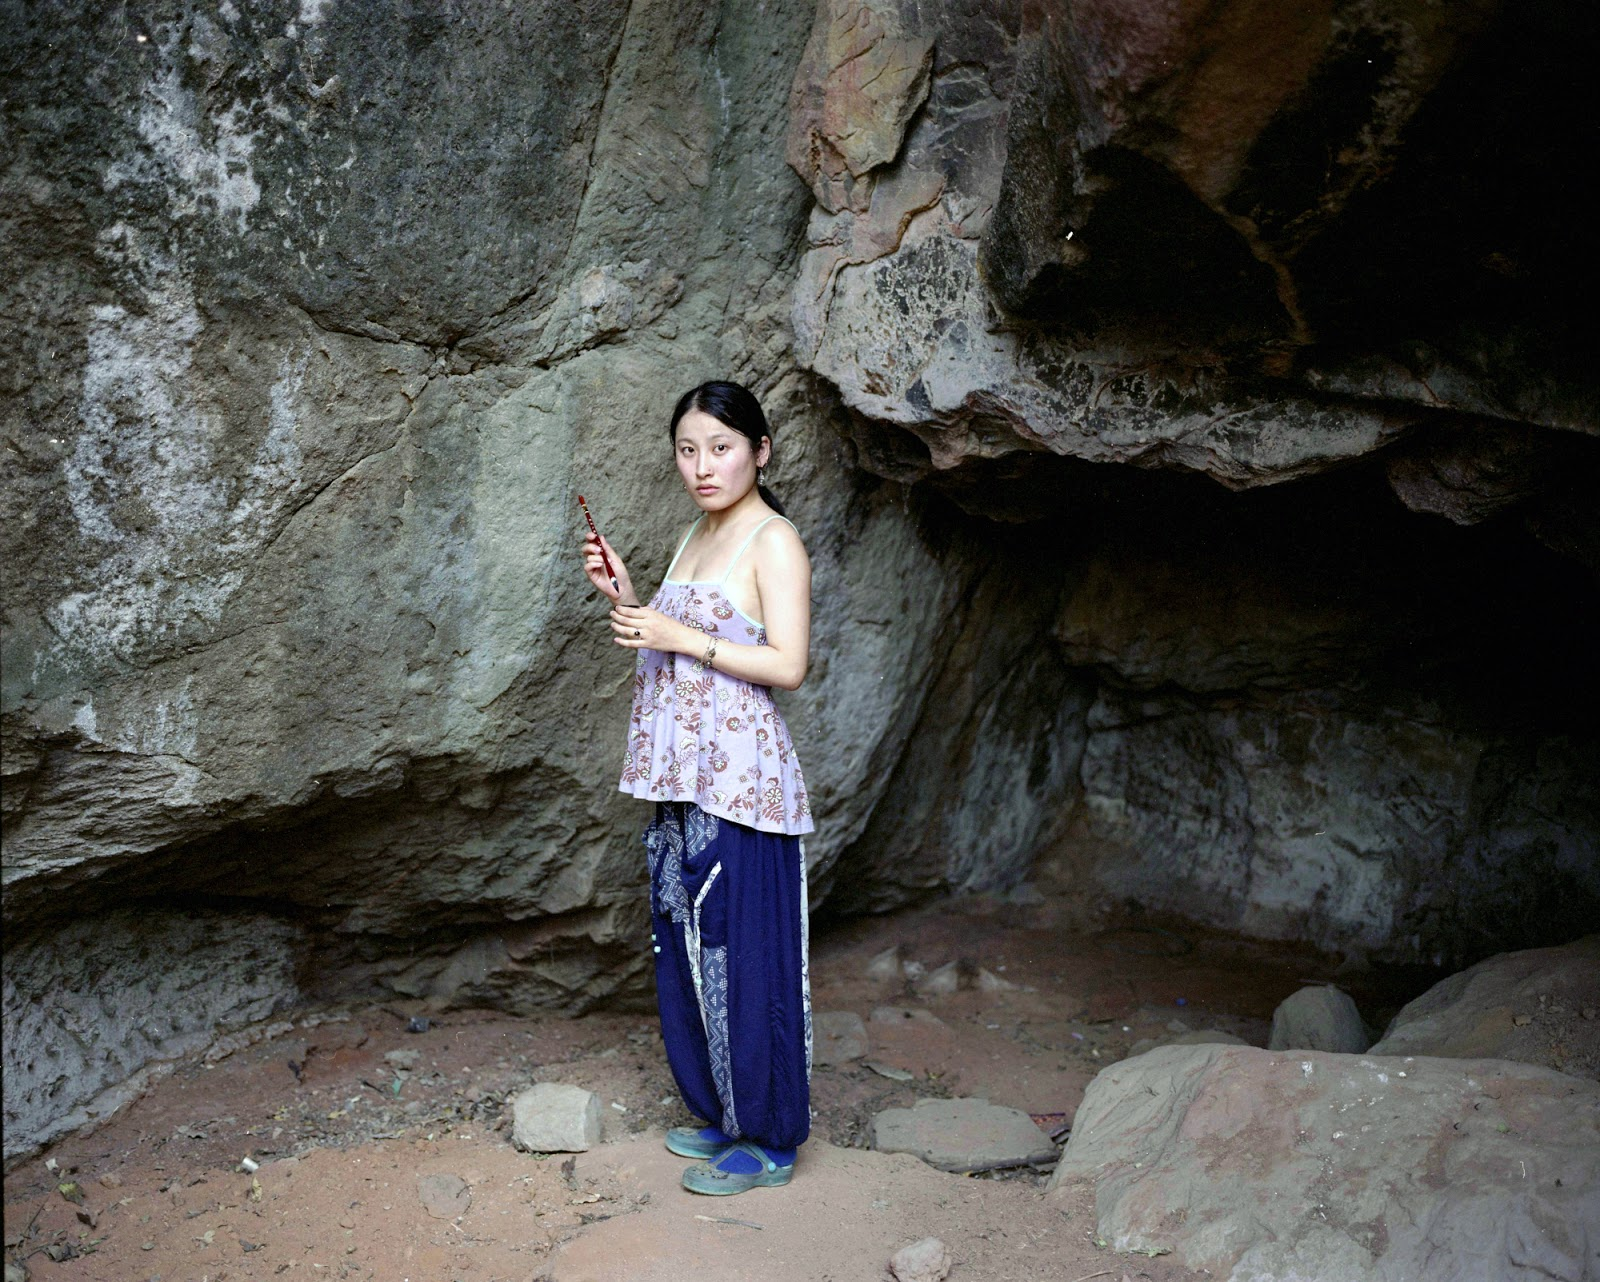 SAROJINI LEWIS: Evocations beside the Cave - video